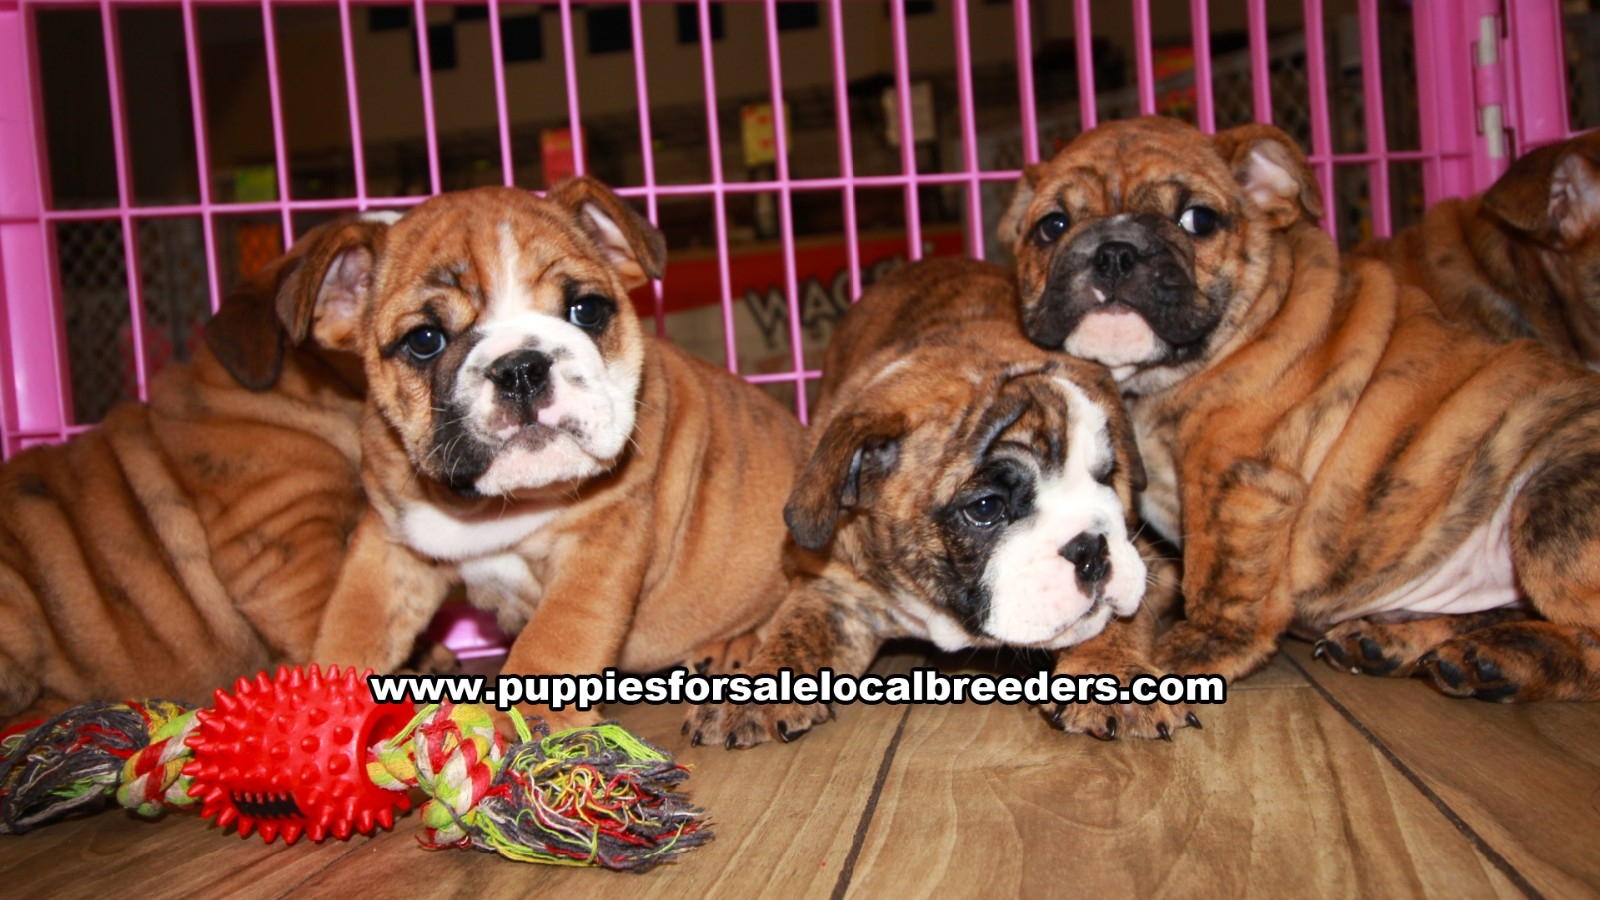 Brindle English Bulldog, Puppies For Sale In Georgia, Local Breeders, Near Atlanta, Ga